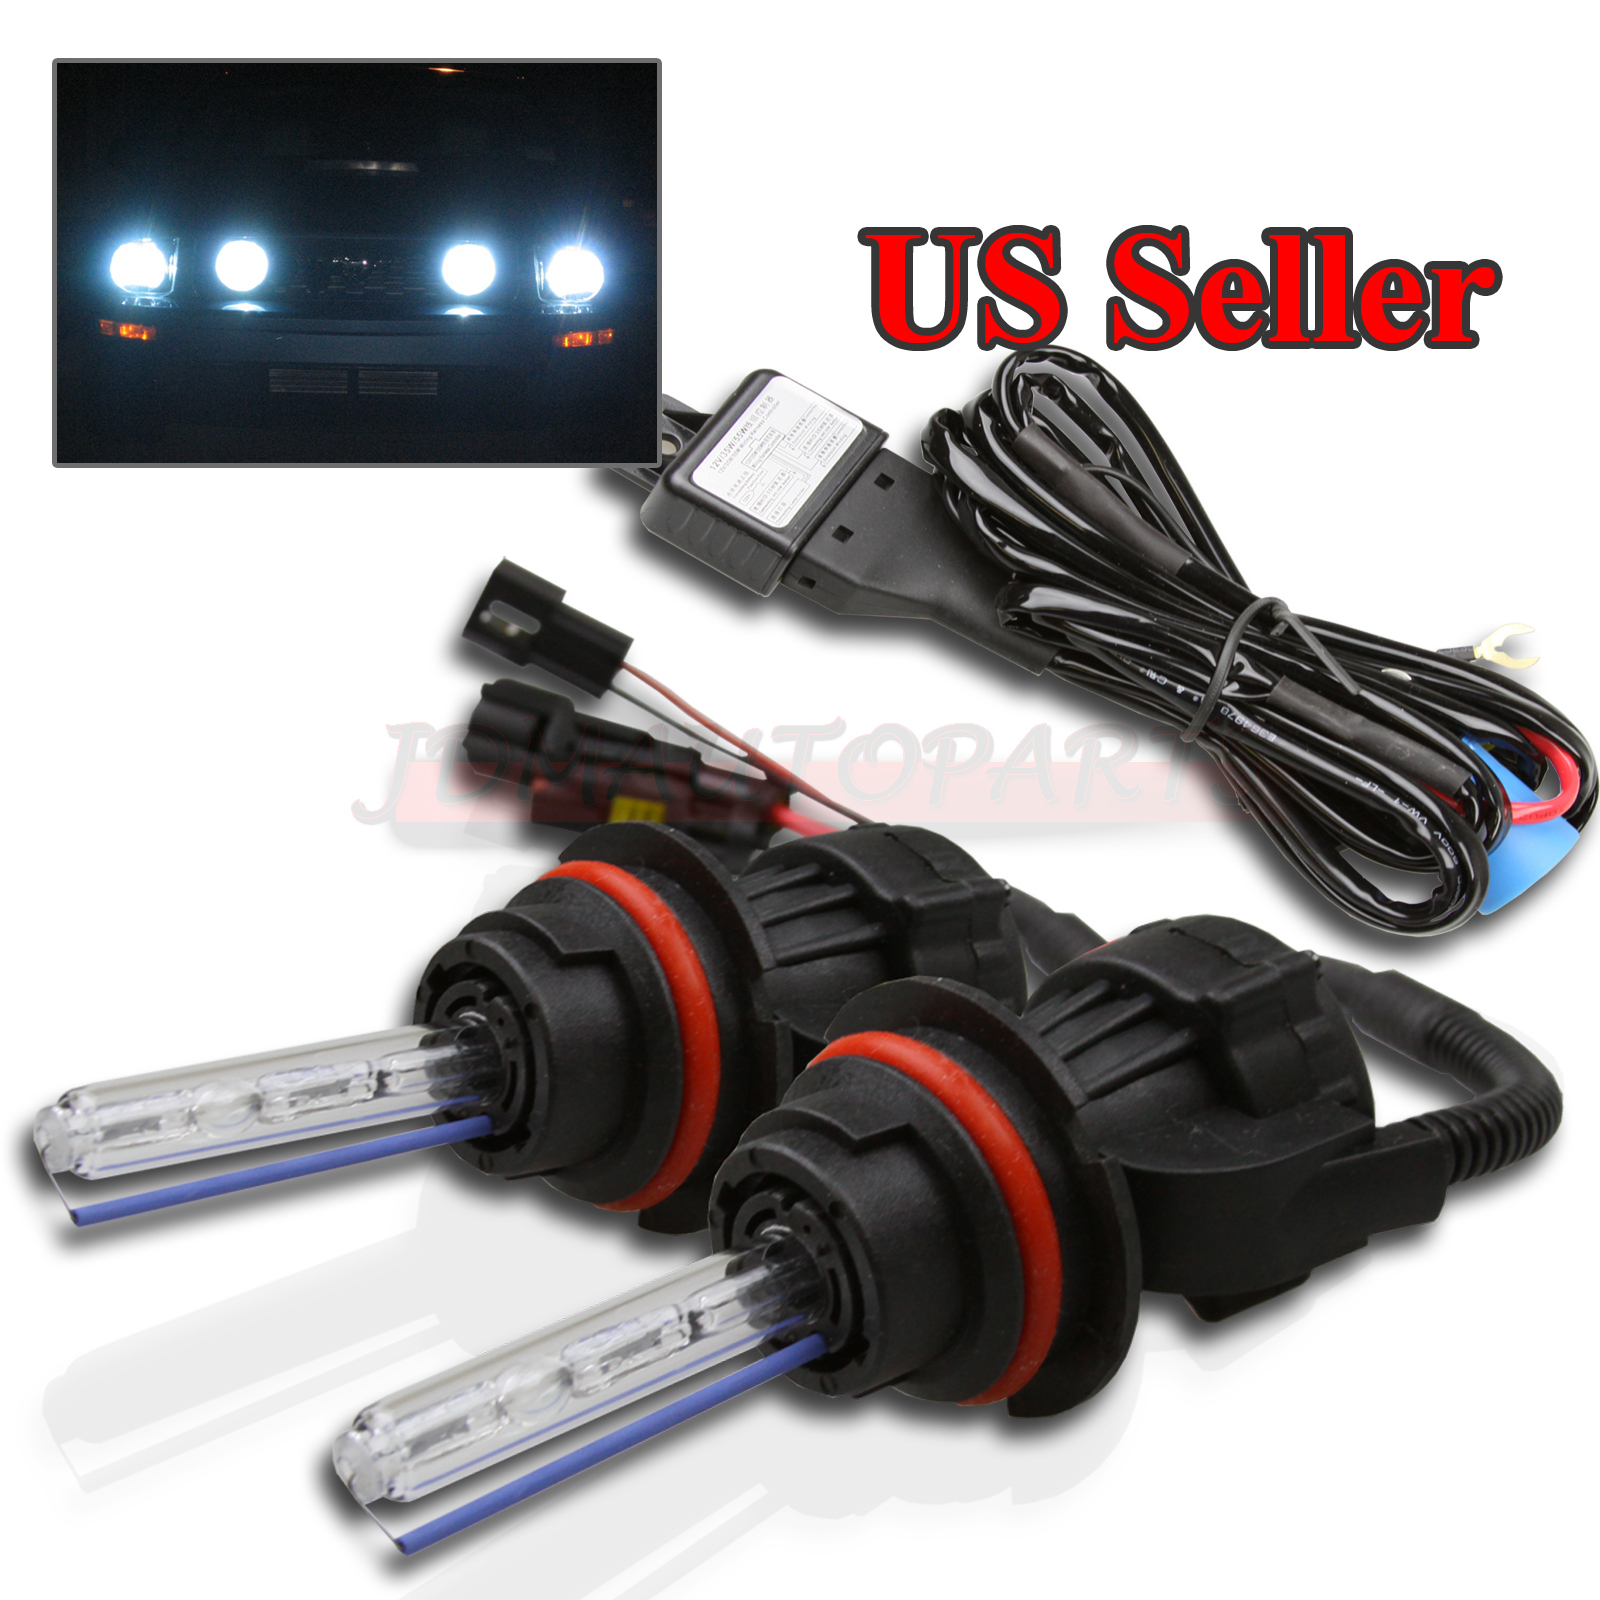 Hid With Relay Wiring Diagram Free Picture Diagrams H13 Kit 9007 Headlight Harness Plug Light Single H4